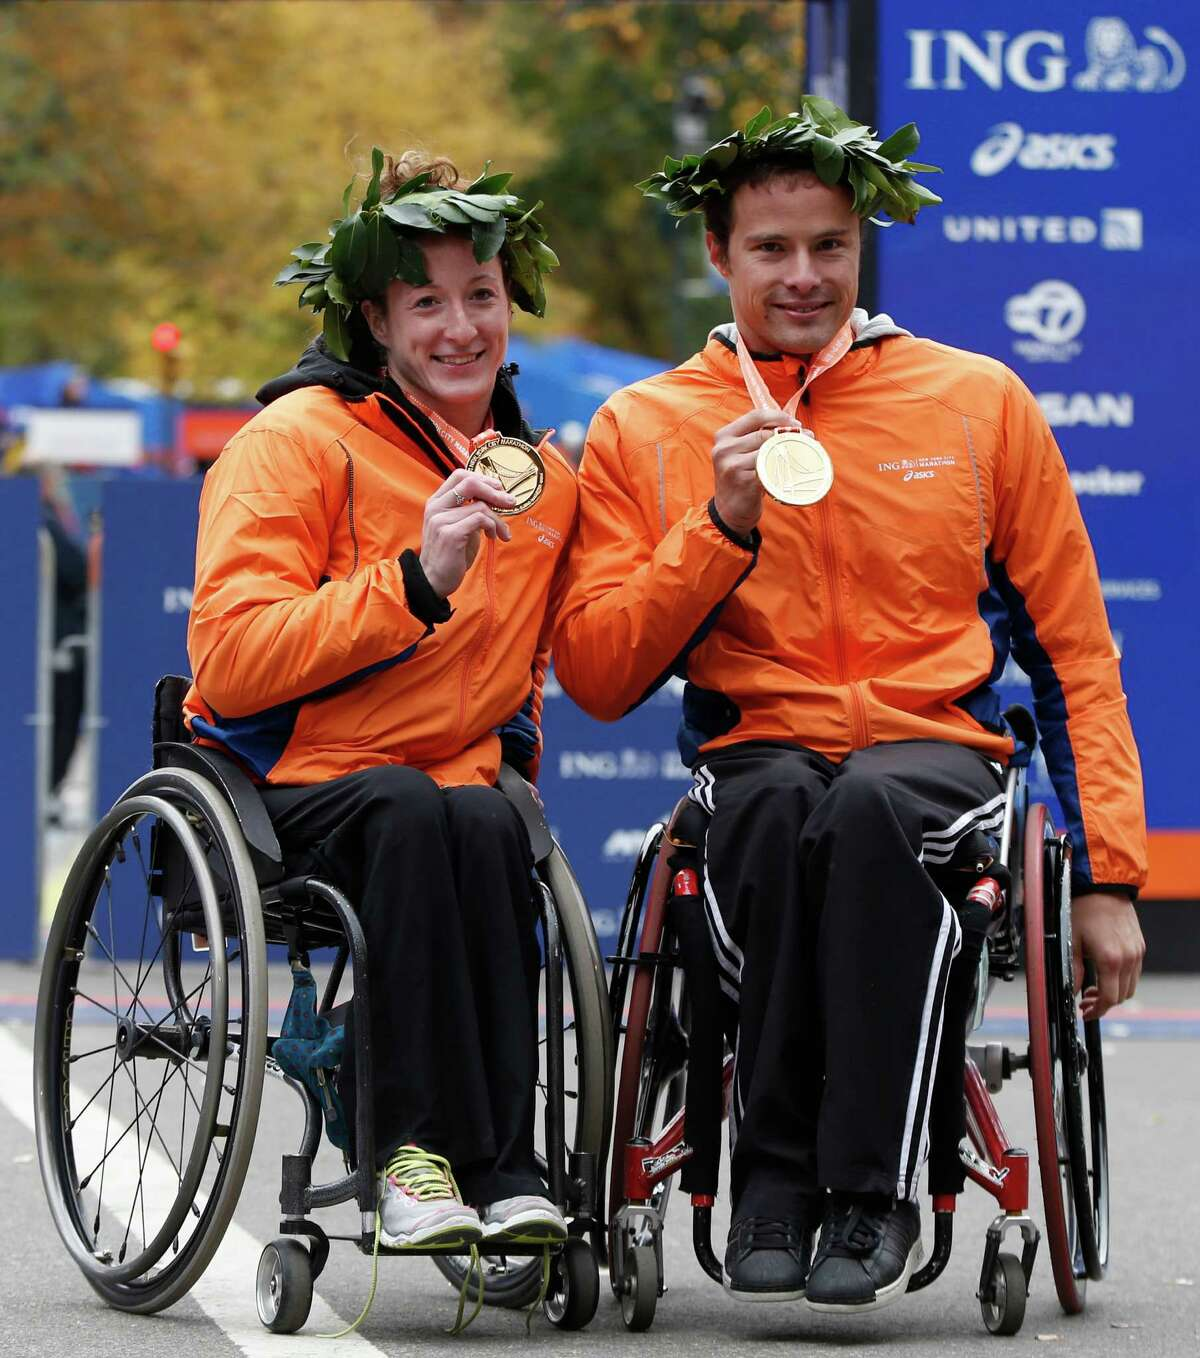 Women's wheelchair winner Tatyana McFadden of Maryland, left, and men's wheelchair winner Marcel Hug of Switzerland pose for photographers after winning their divisions in the New York City Marathon, Sunday, Nov. 3, 2013, in New York. (AP Photo/Kathy Willens) ORG XMIT: NYKW111